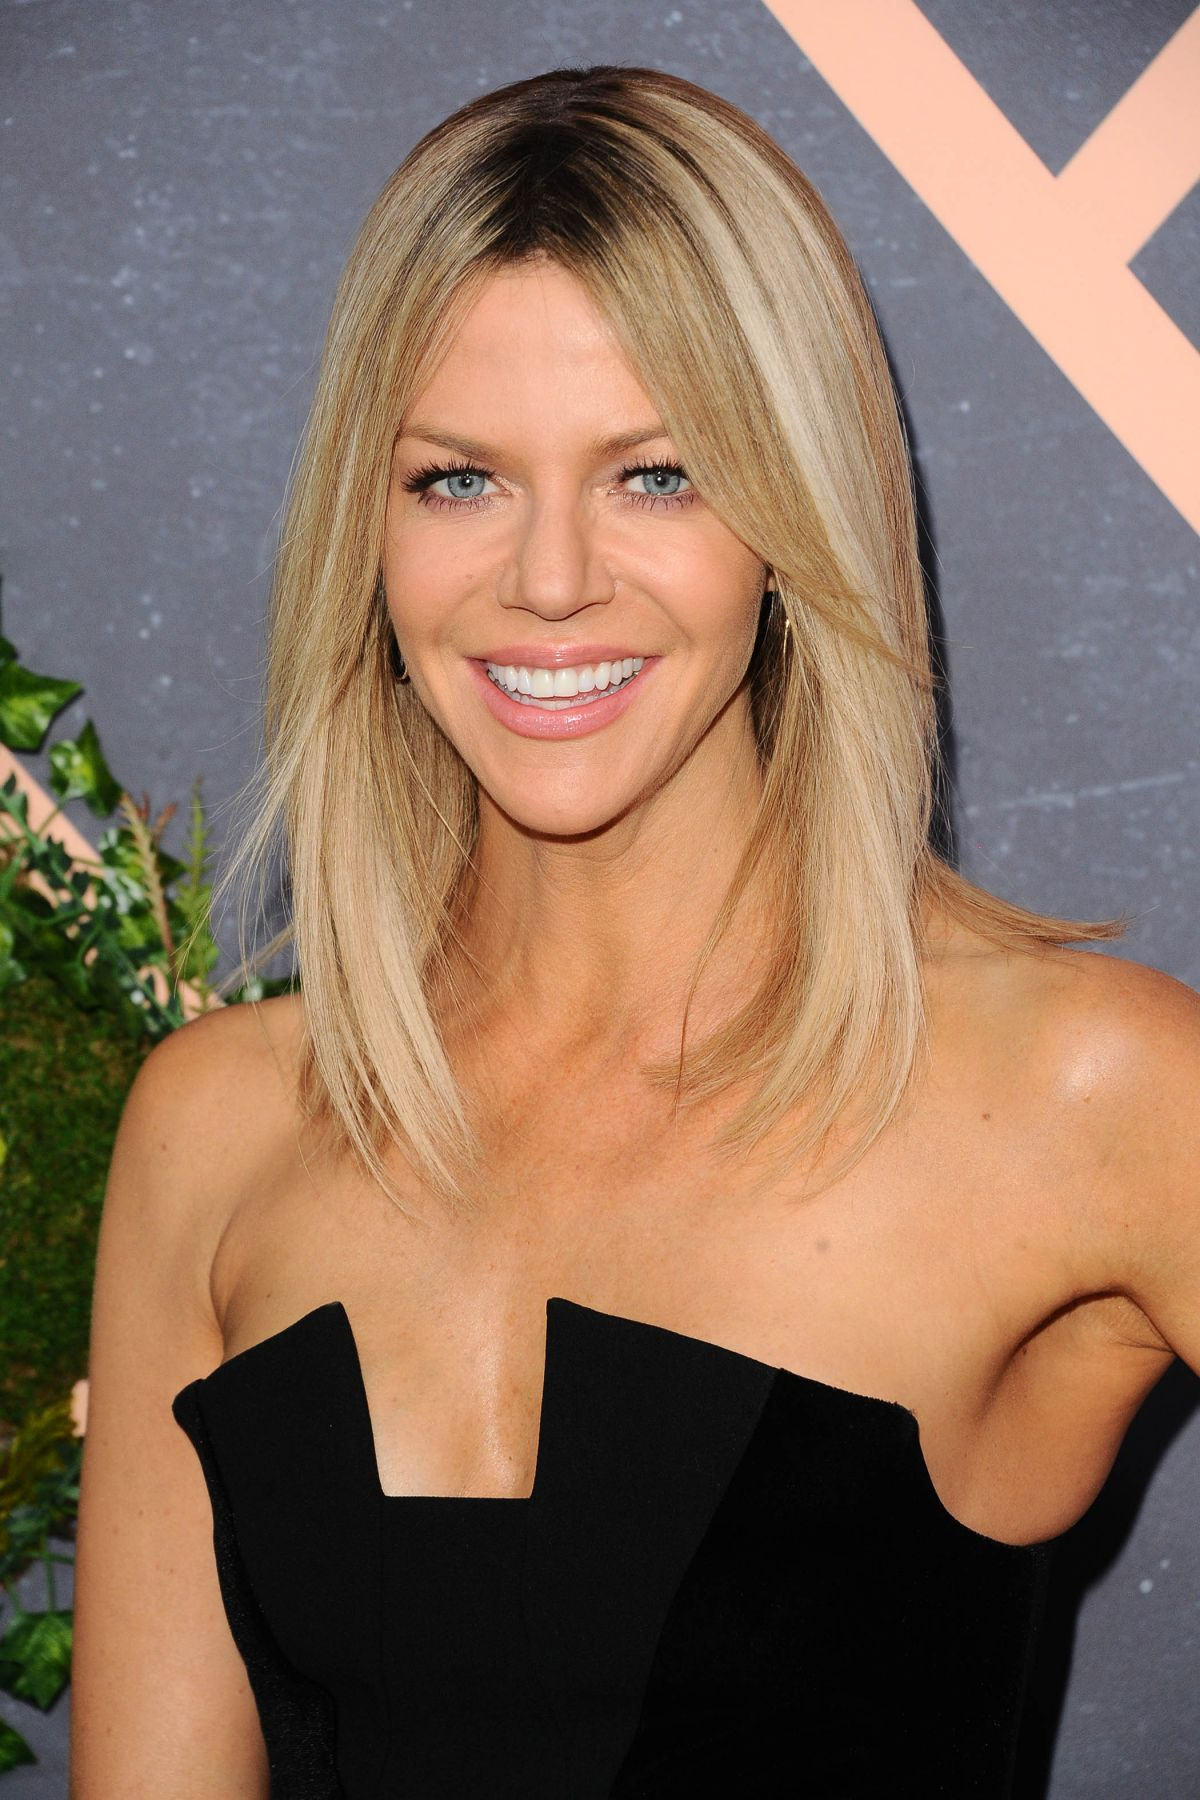 Discussion on this topic: Jan Hunt, kaitlin-olson/